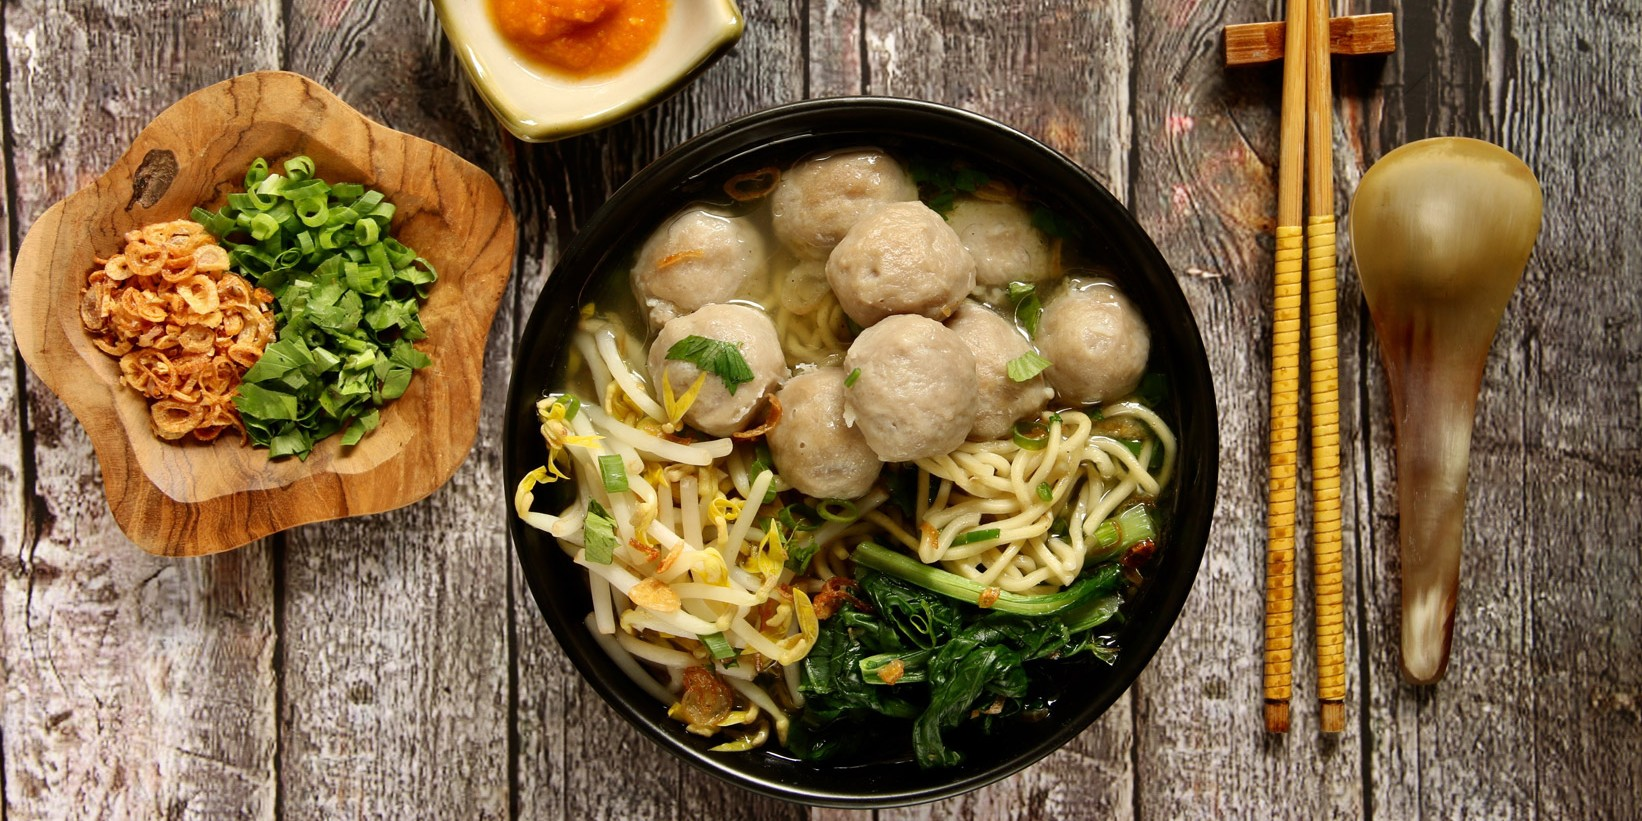 LIVING ABROAD: TOP 10 FOODS IN CHINA